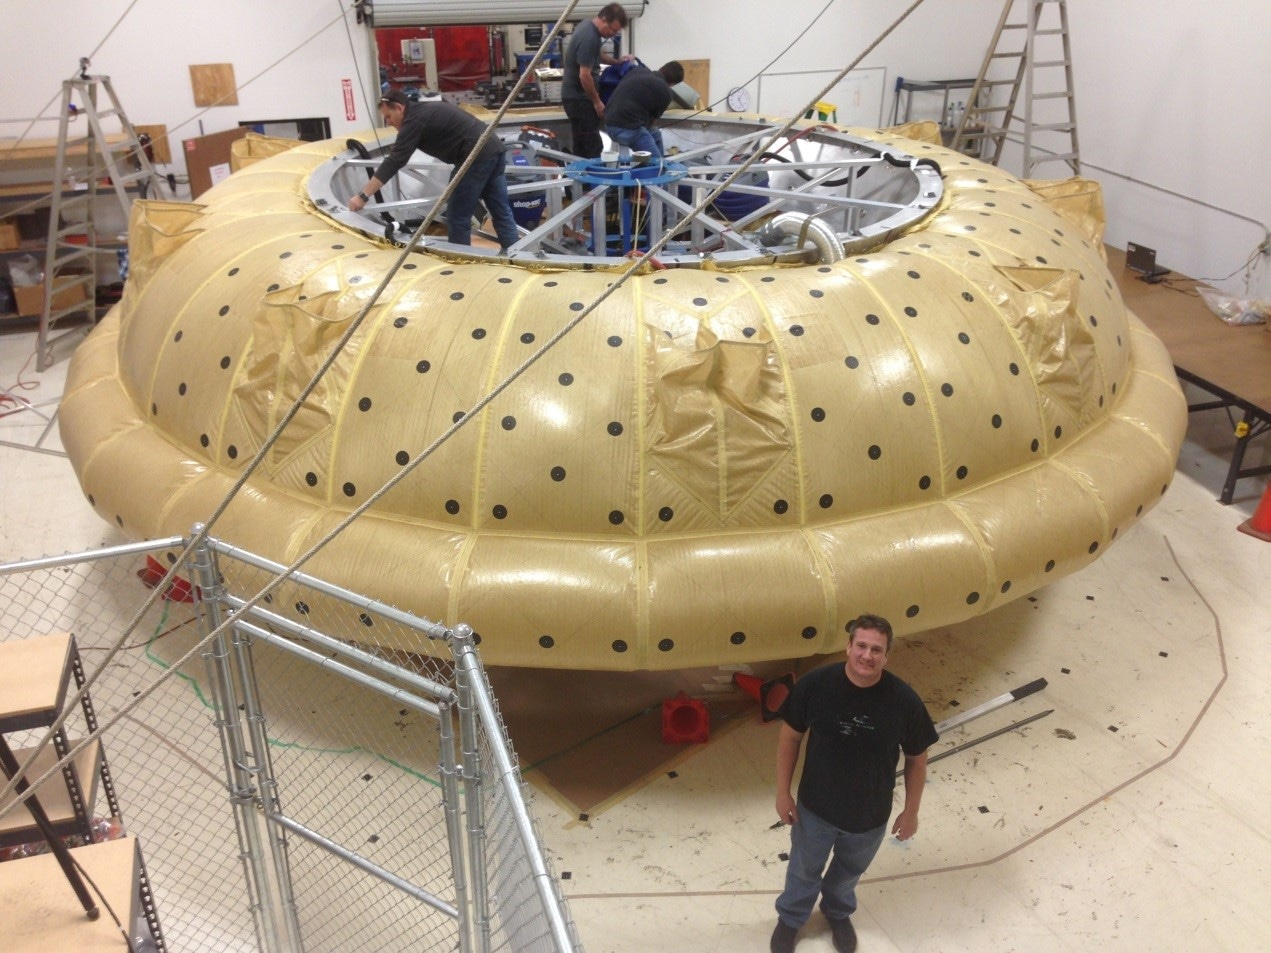 MID-MOUNTAIN'S COATED FABRIC FOR SIAD-E (supersonic inflatable aerodynamic decelerator) for NASA LDSD program (low density supersonic decelerator)